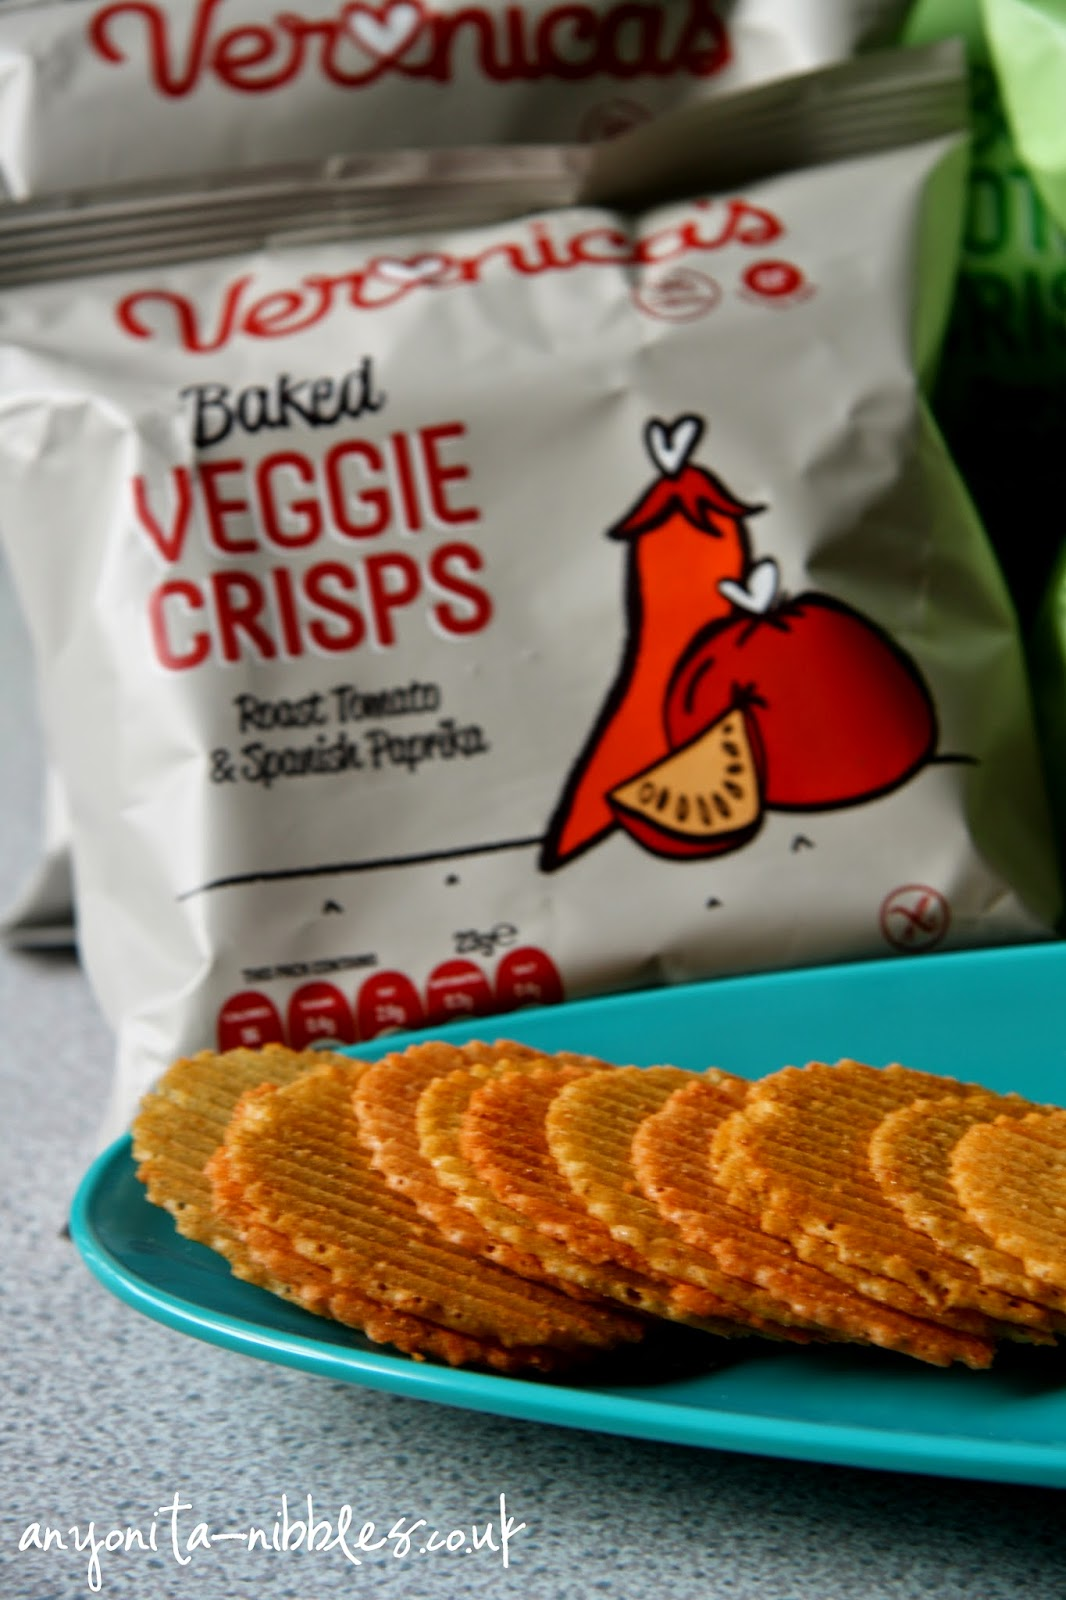 One of the veggie crisp range of Veronica's from Anyonita-nibbles.co.uk